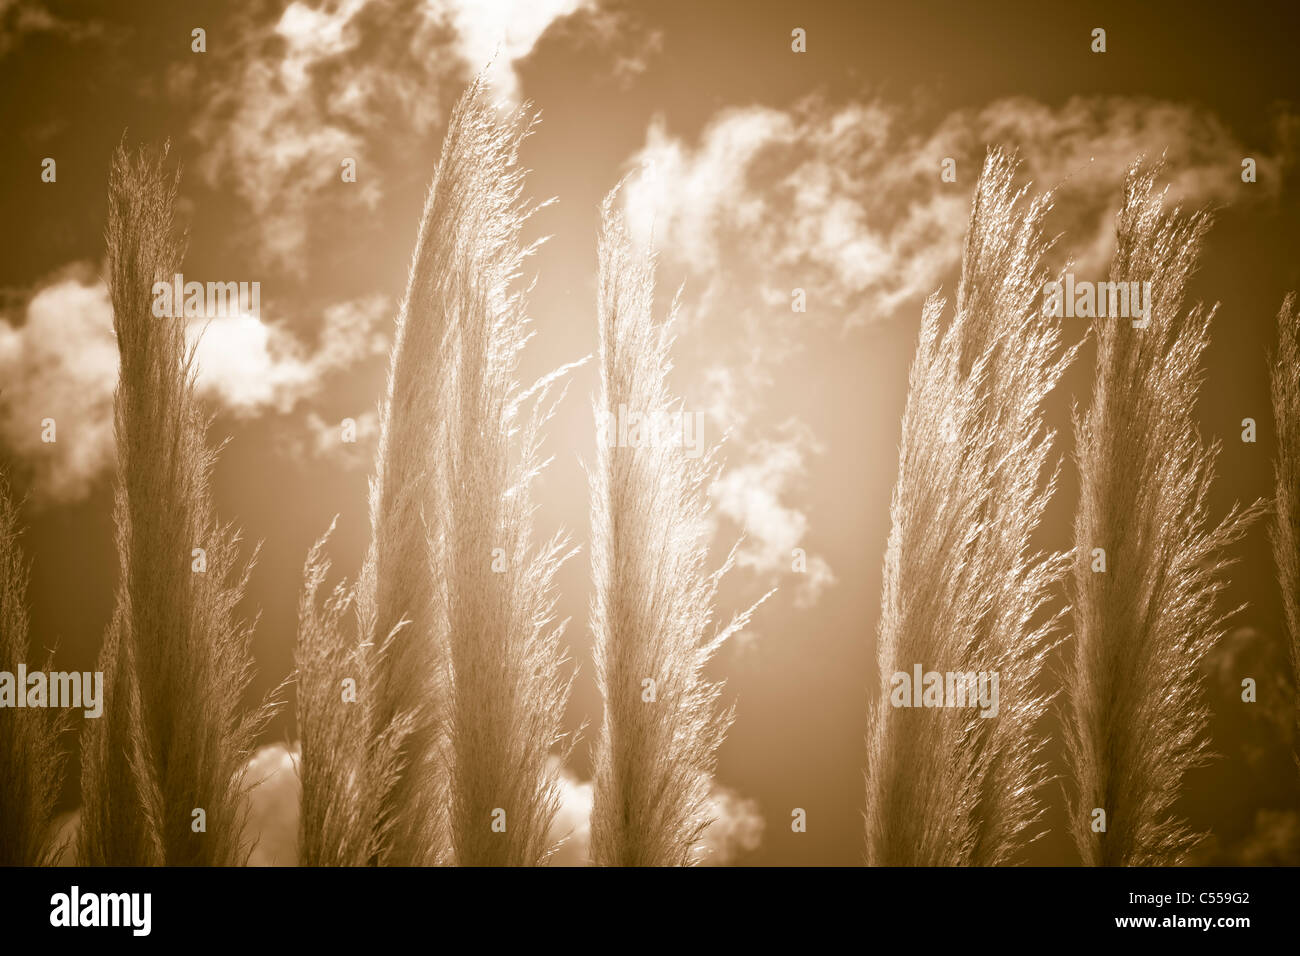 Detail of reed and sunset. Natural abstract background. Stock Photo